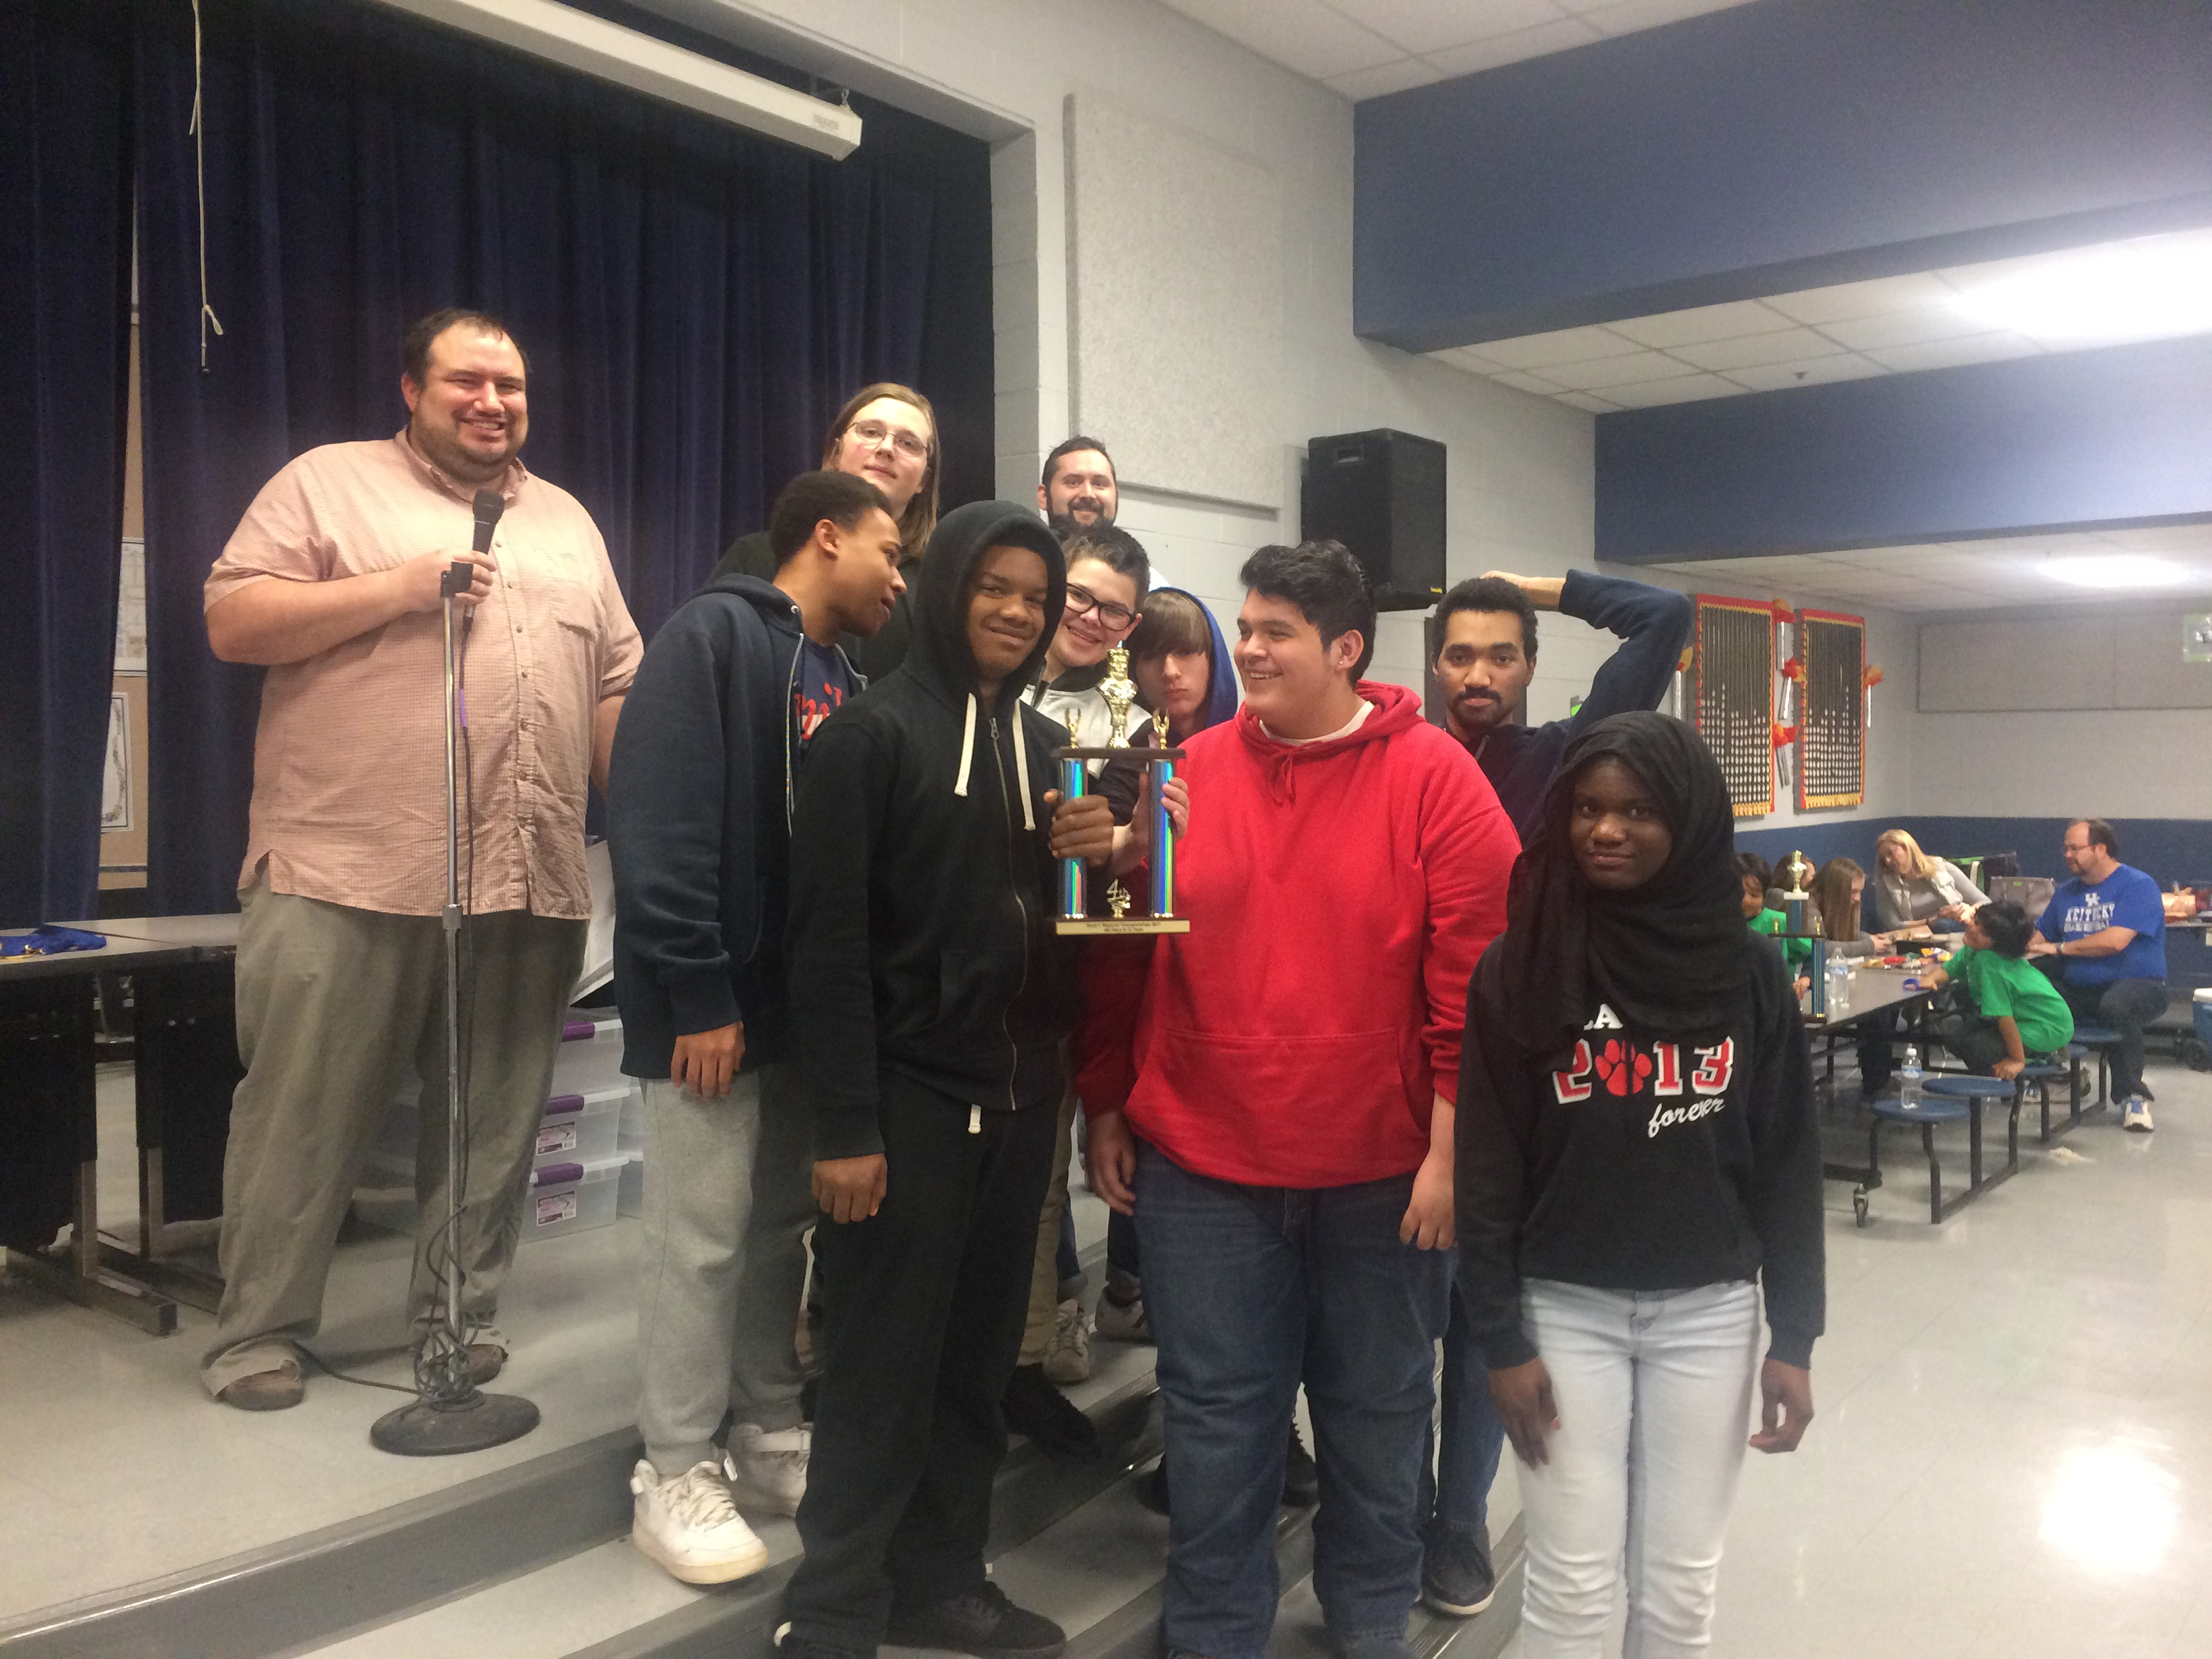 Chess Team Wins Fourth Place at Regionals